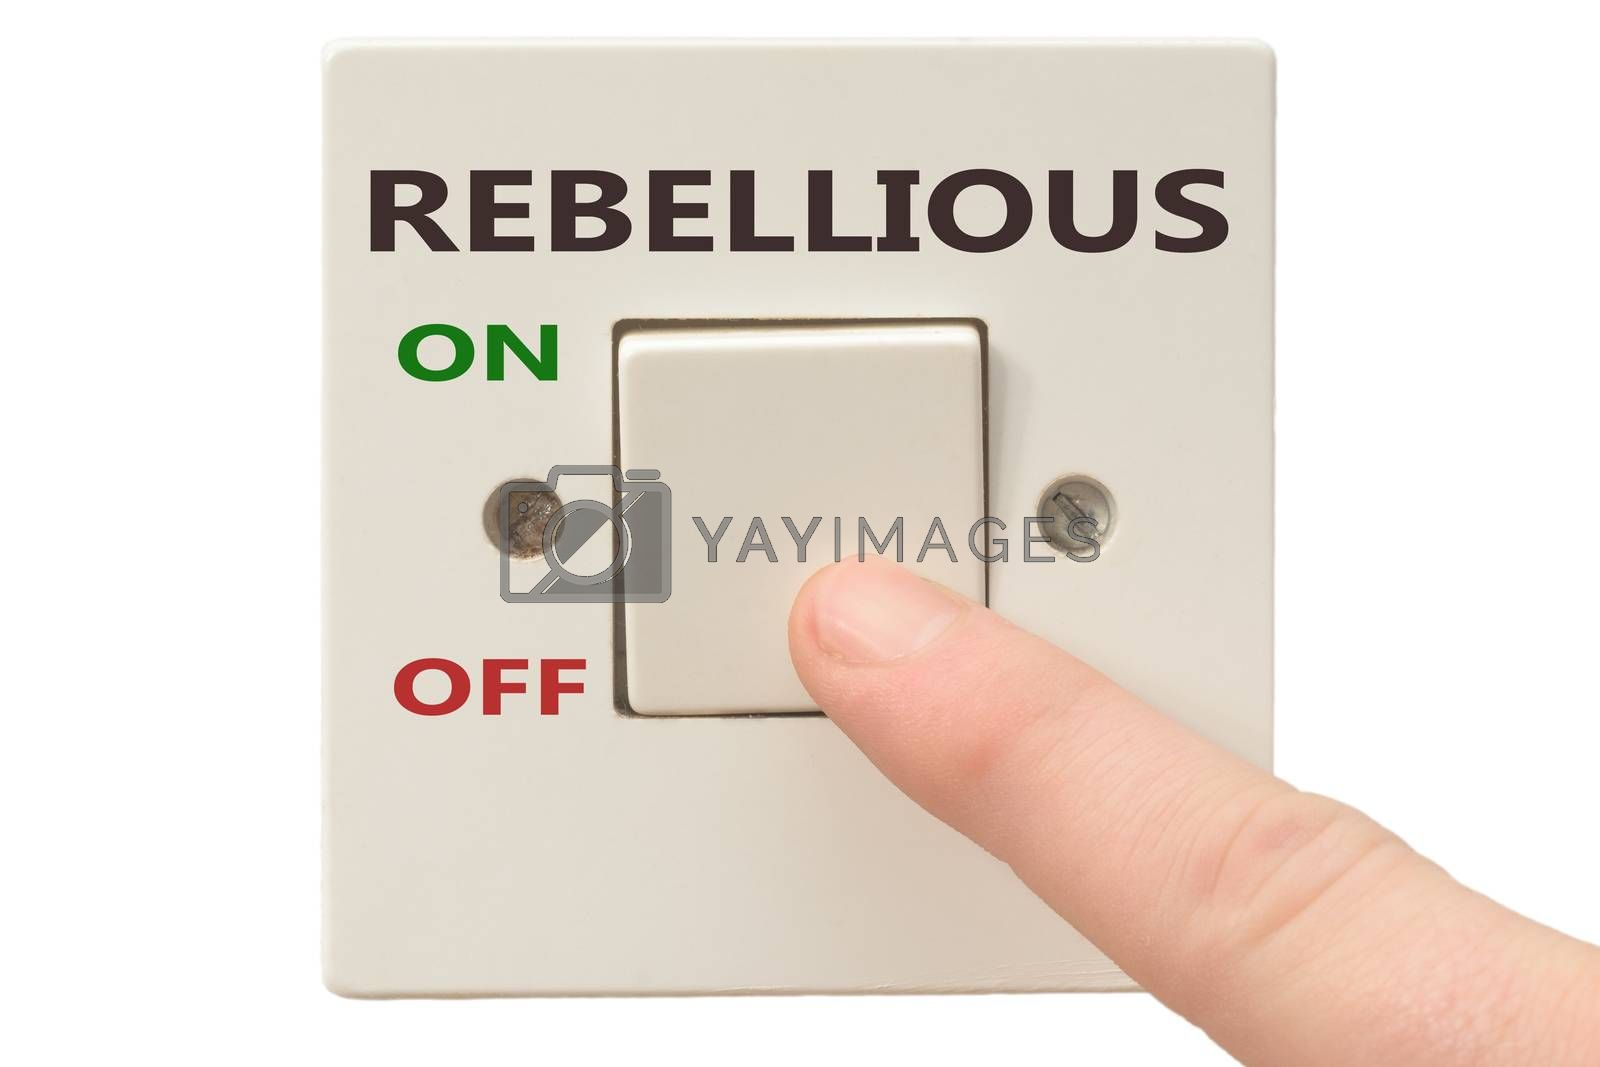 Turning off Rebellious with finger on electrical switch